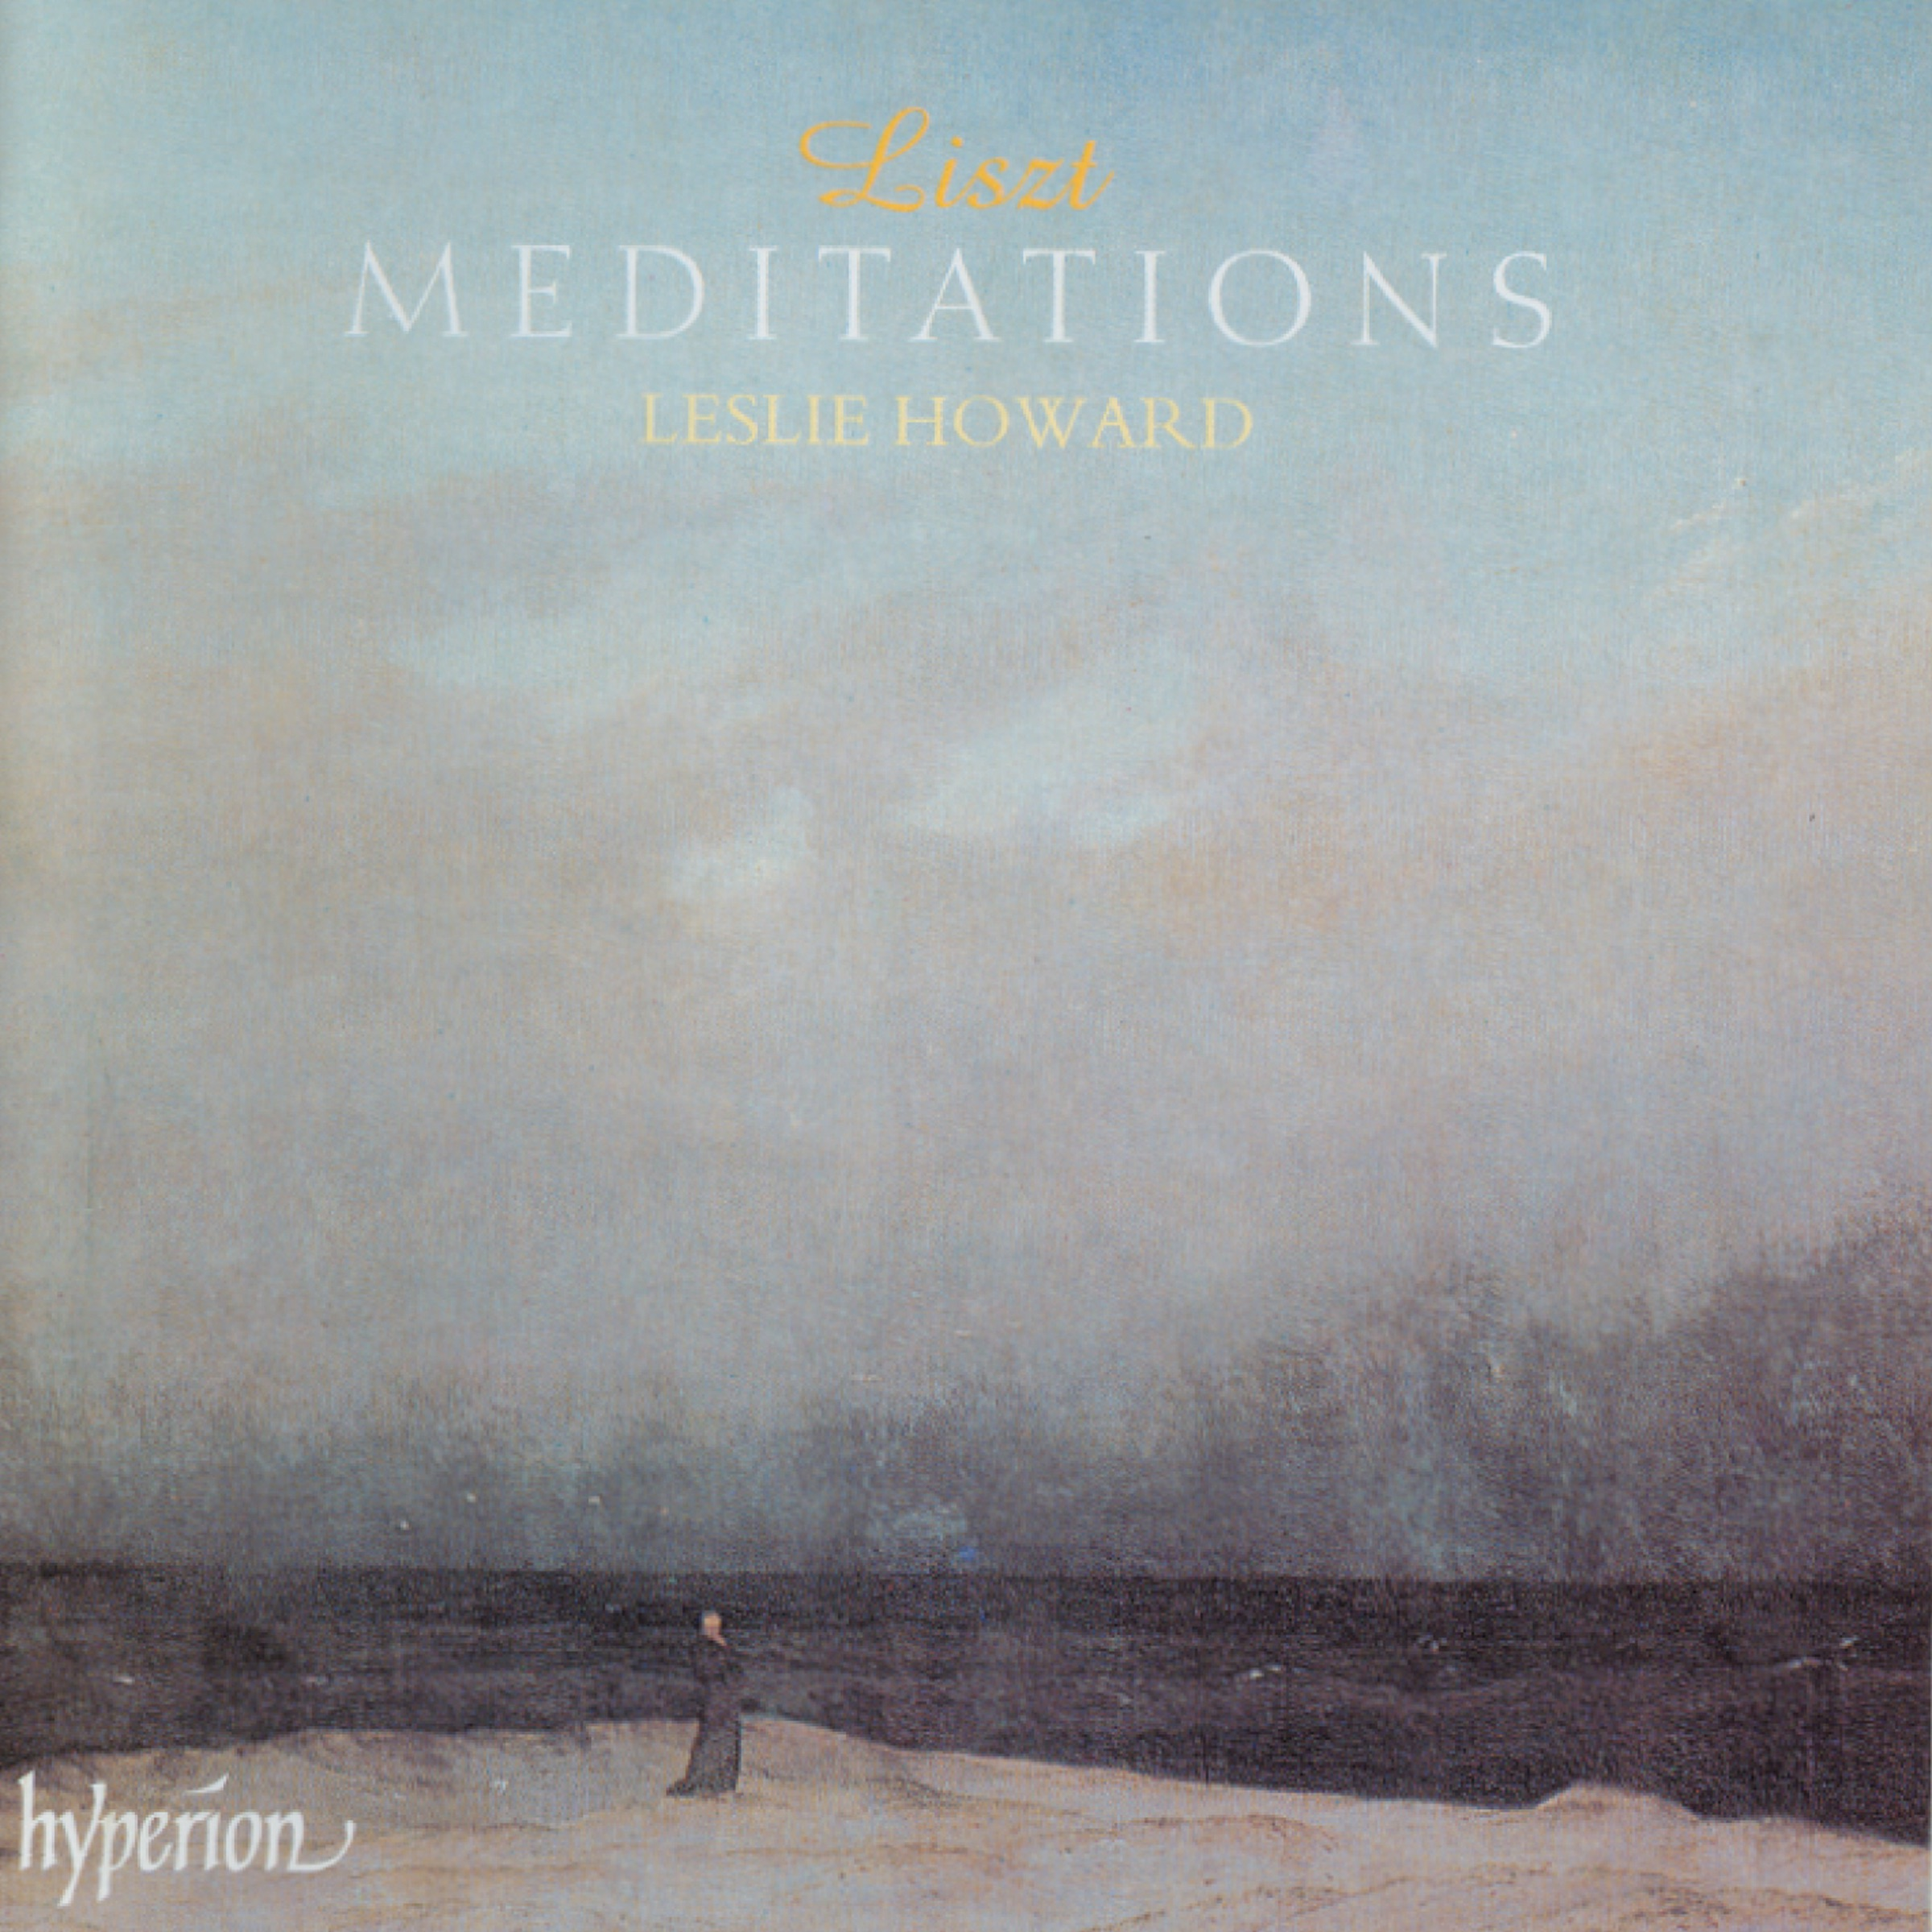 Liszt: The Complete Music for Solo Piano, Vol. 46 – Meditations